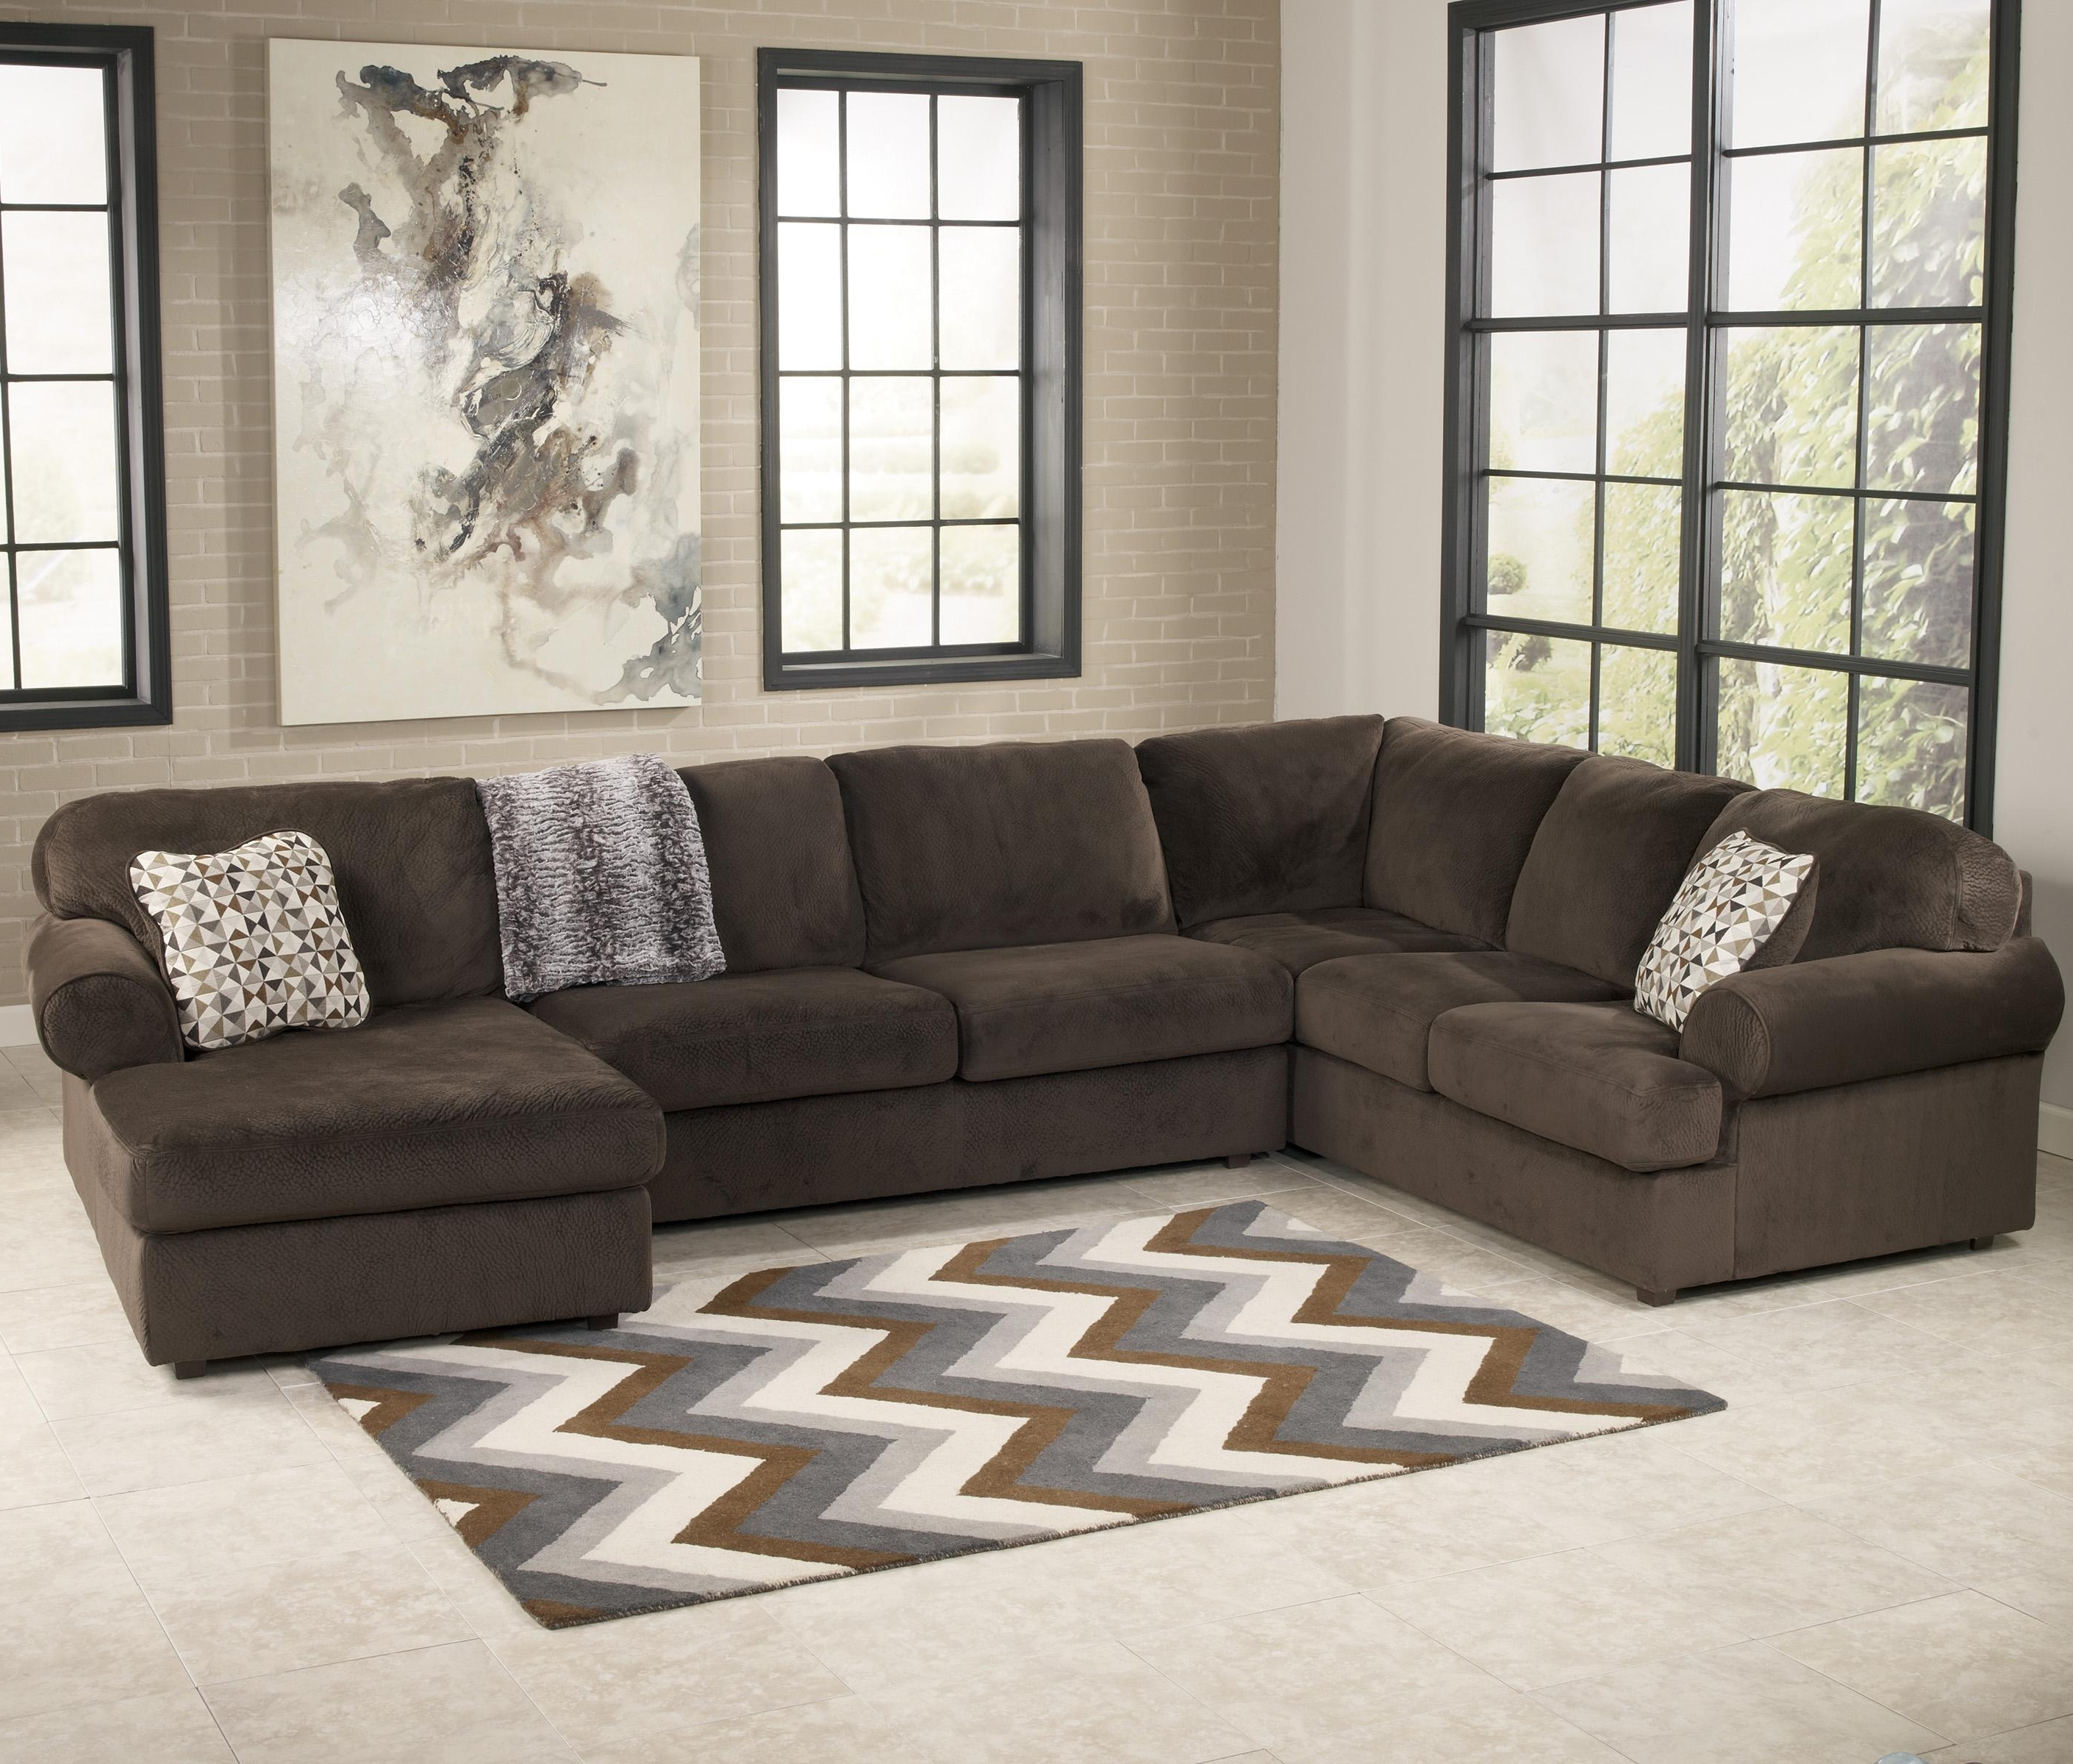 Right Sectional Sofa Sven Intuition Gray Scandinavian Furniture Within Trendy Regina Sectional Sofas (View 4 of 20)